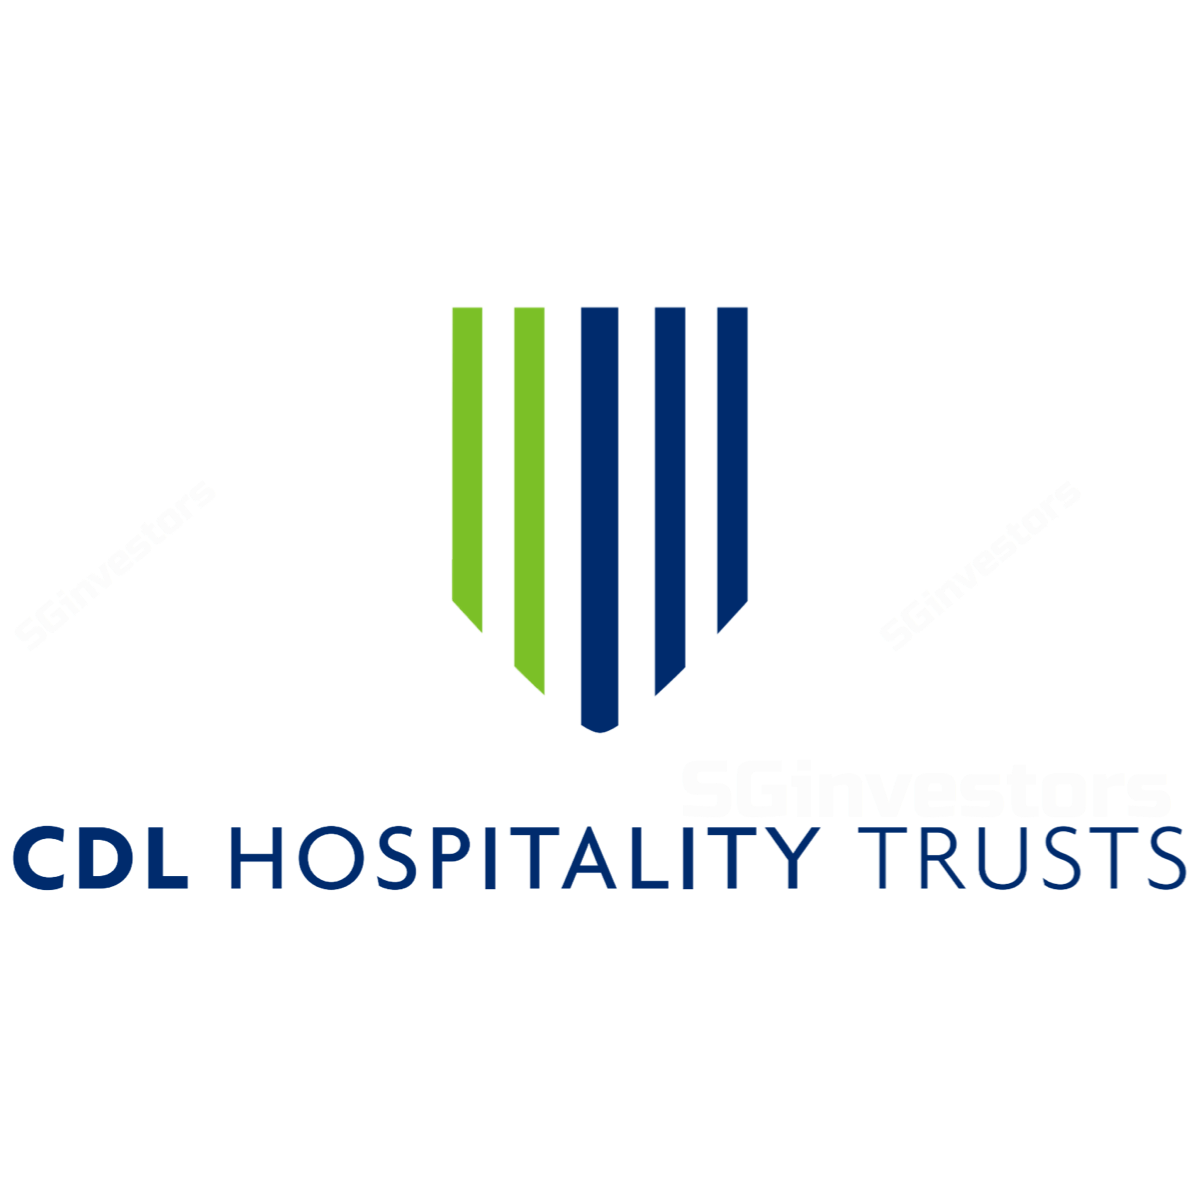 CDL Hospitality Trusts - DBS Vickers 2017-07-31: Attractive And Undemanding